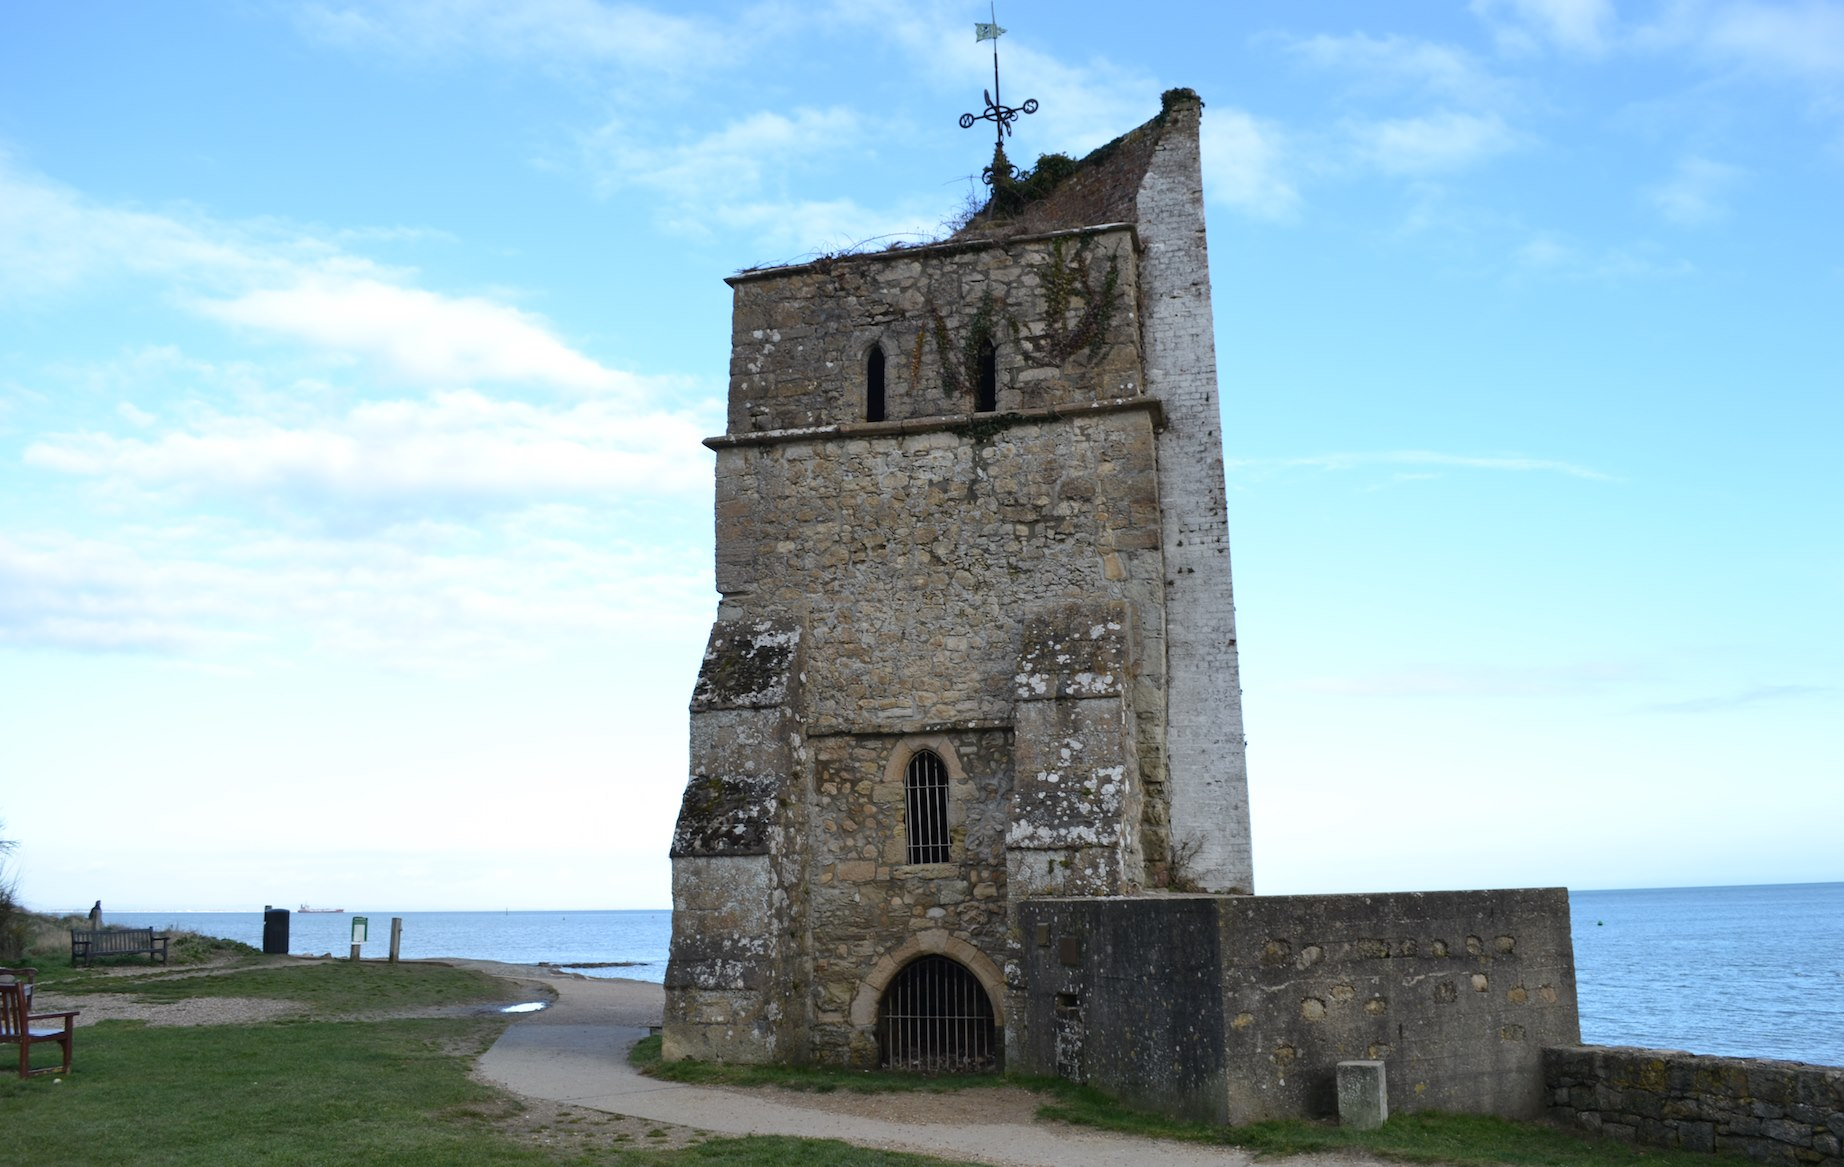 The Old Church at St Helen's Beach